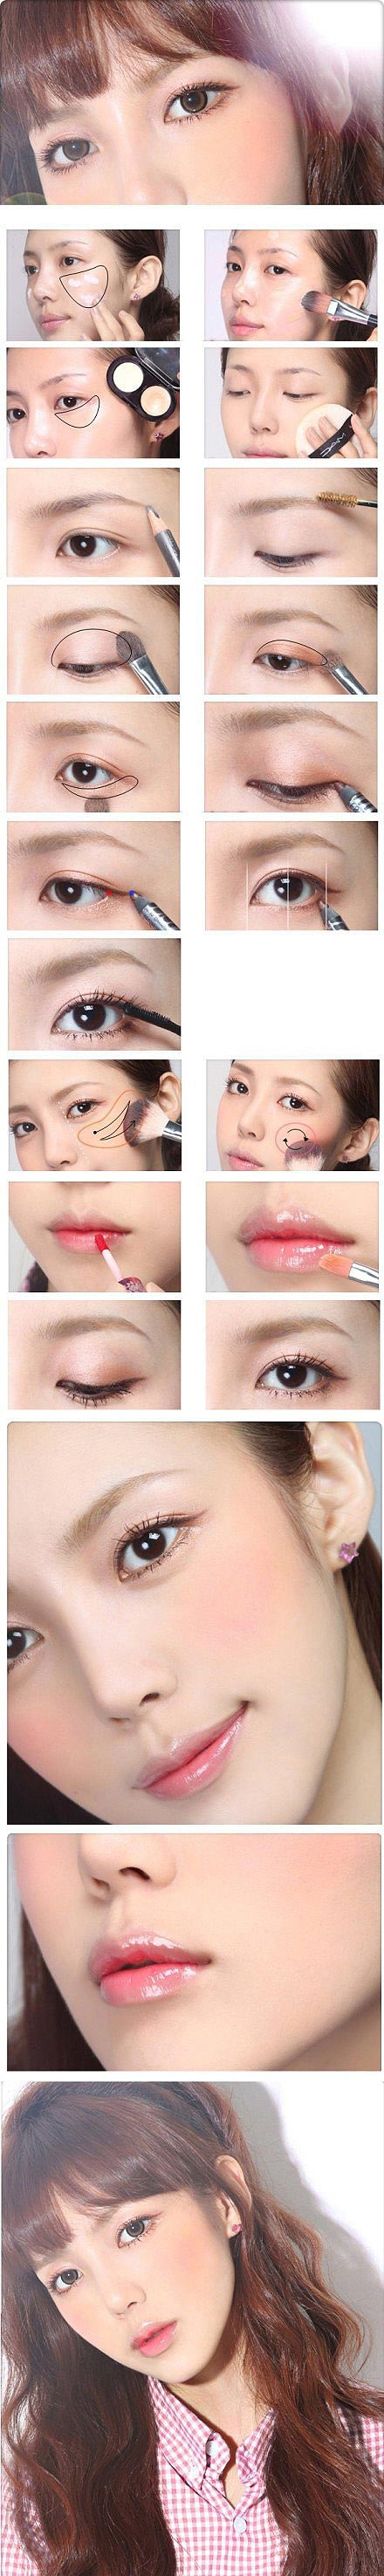 step by step makeup tutorial from korea issue247com